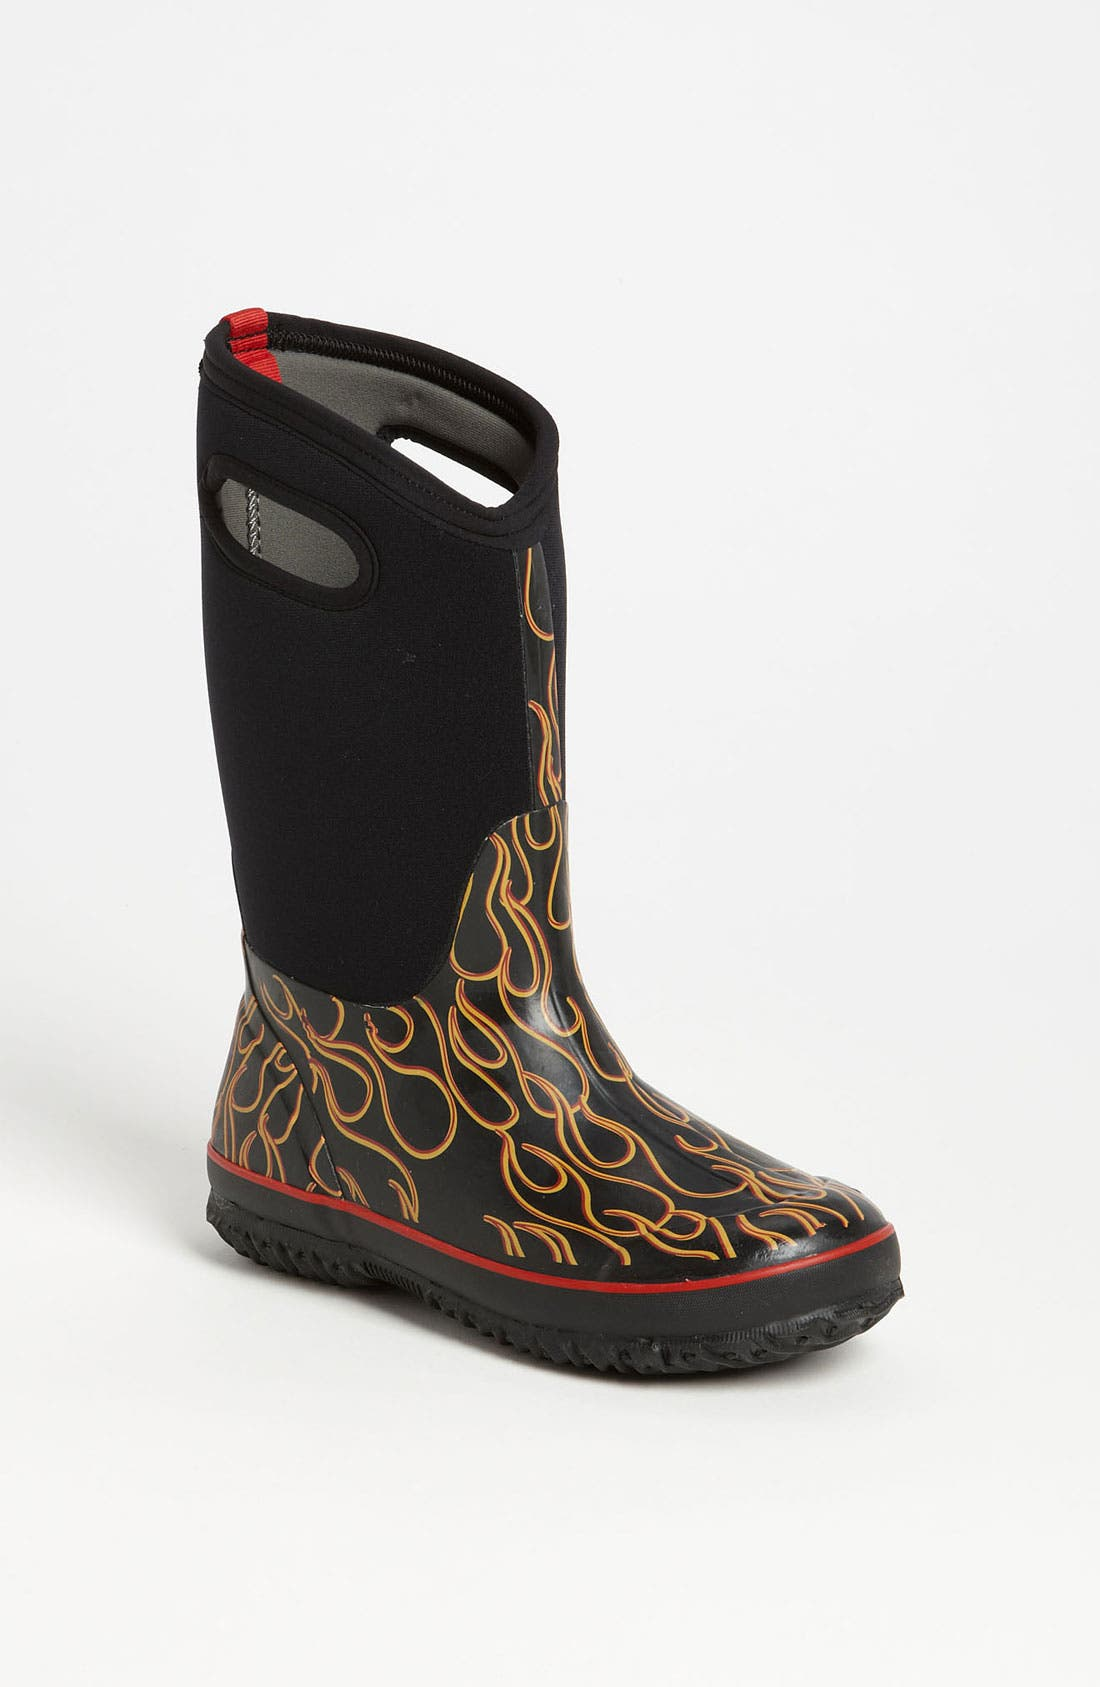 Alternate Image 1 Selected - Bogs 'Classic High' Waterproof Boot (Toddler, Little Kid, & Big Kid)